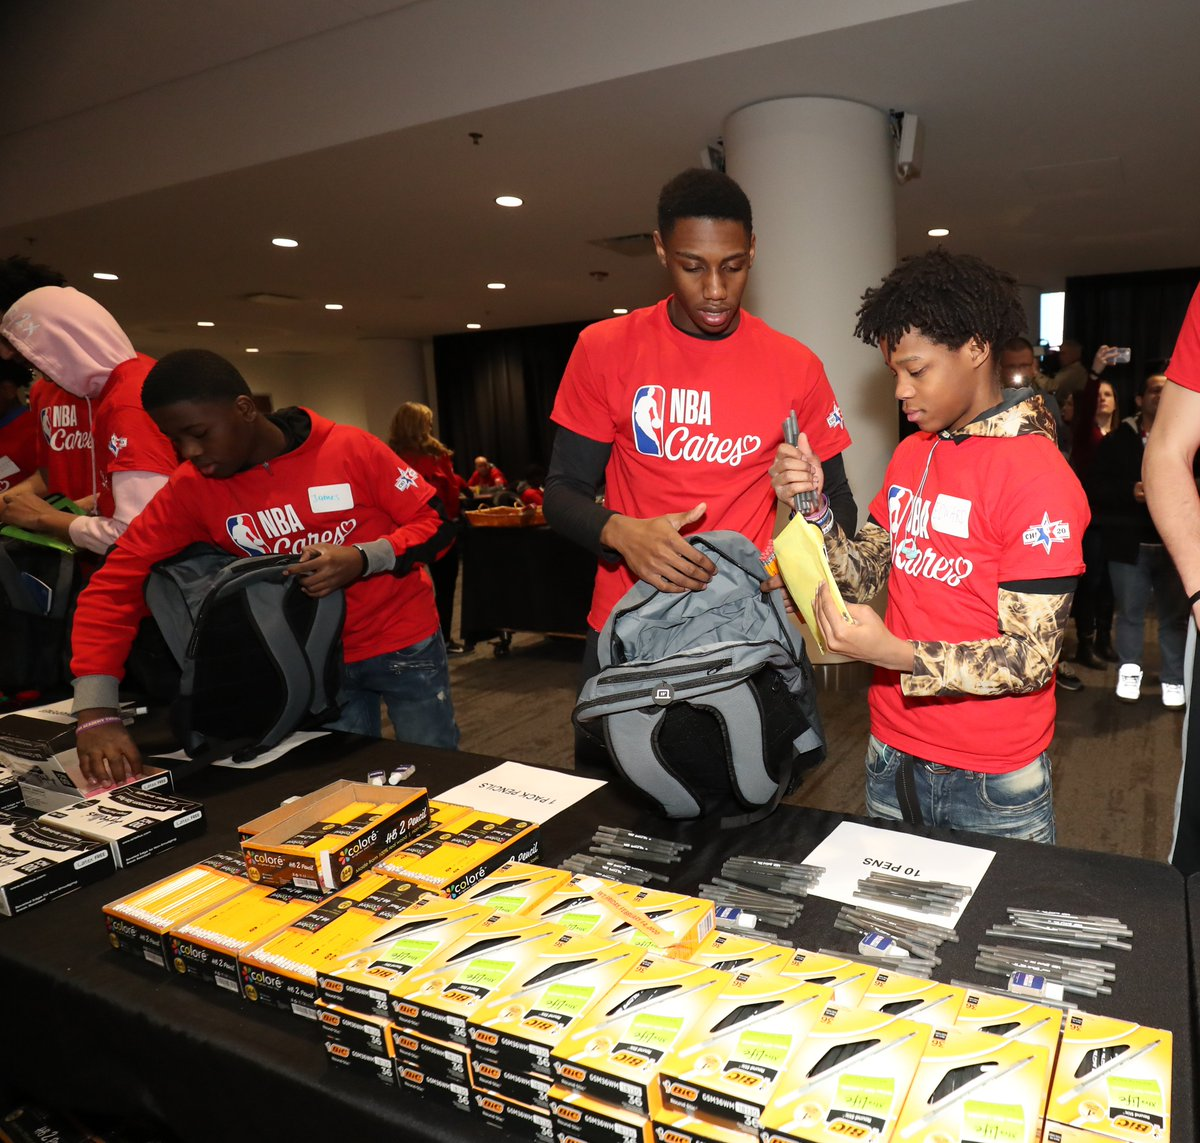 Yesterday during Day of Service with @nbacares, RJ helped pack school success kits that will benefit local teachers and students in the Chicago community.  #NBACaresAS20 | #NBAAllStar